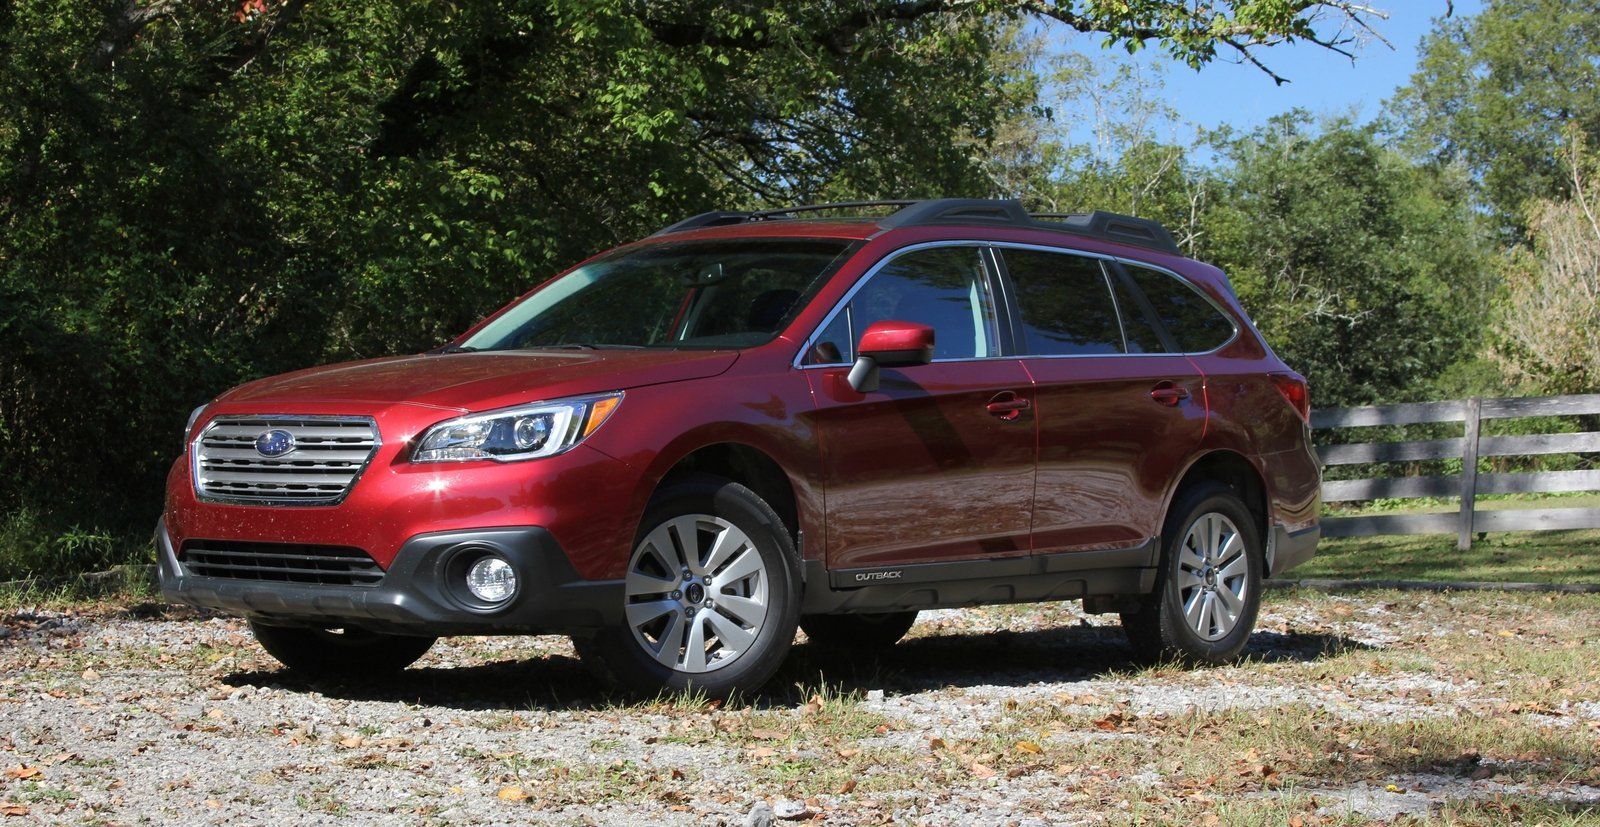 2015 subaru outback driven review top speed. Black Bedroom Furniture Sets. Home Design Ideas